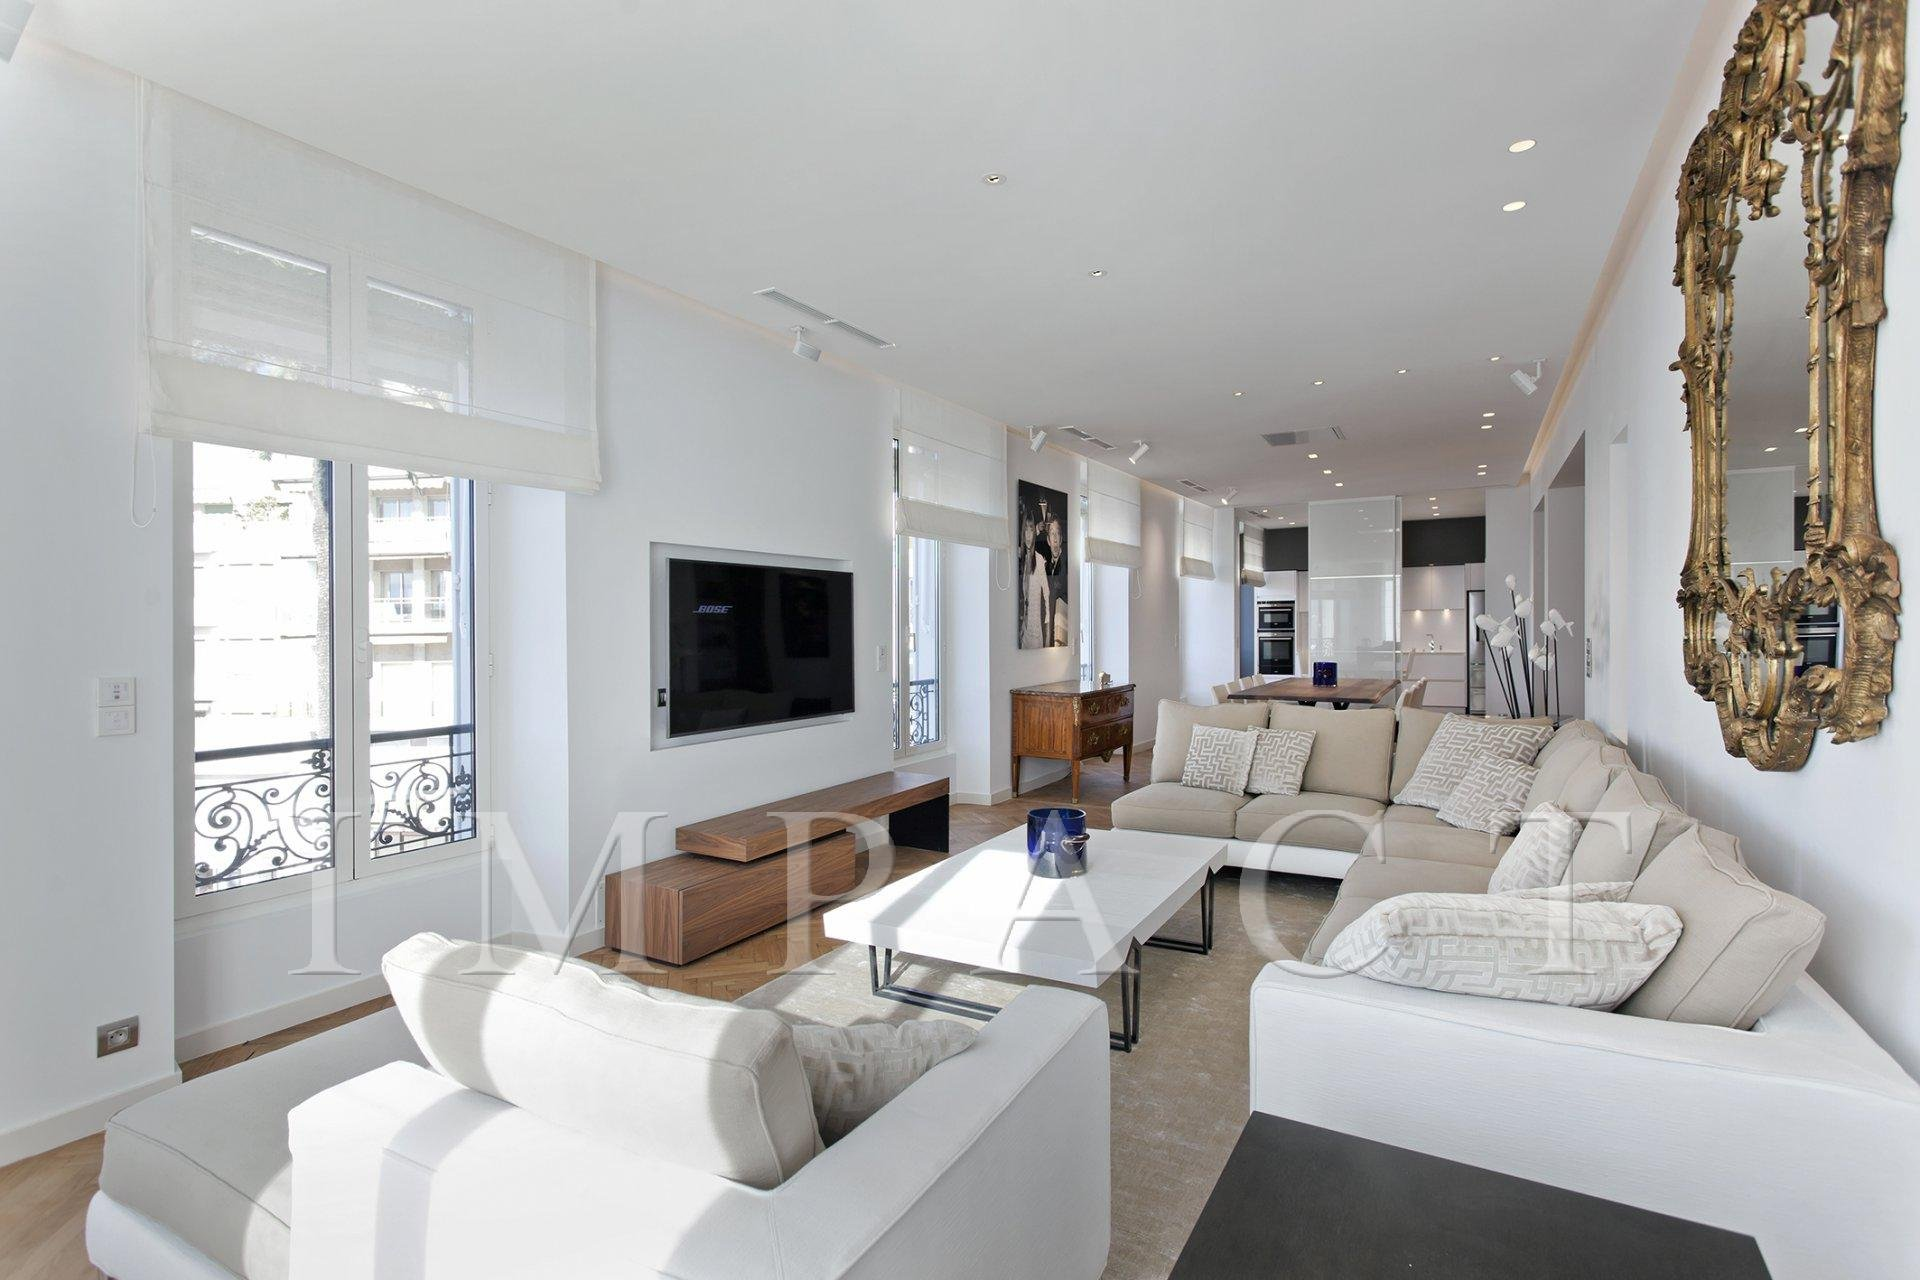 Renovated apartment opposite Le Palais to rent in Cannes